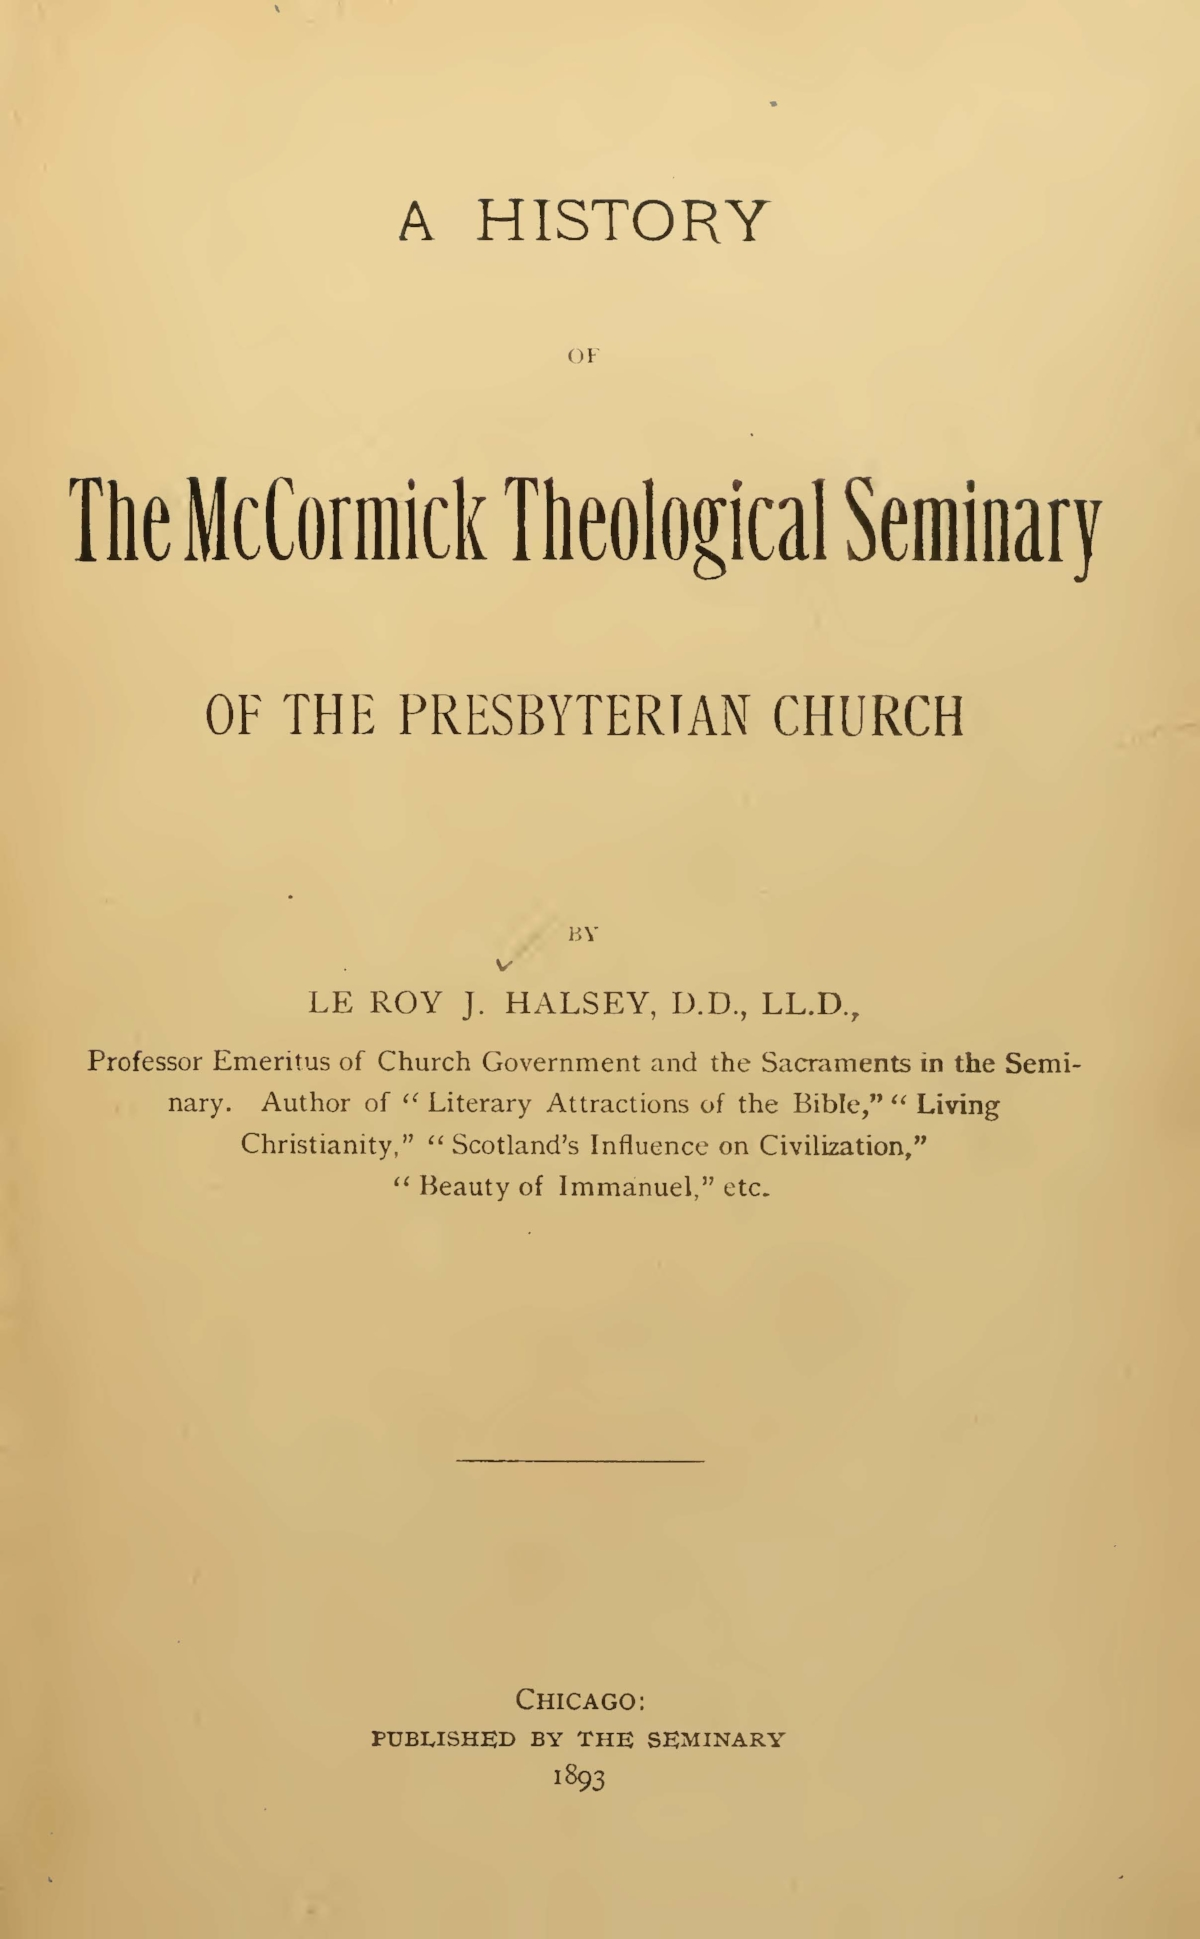 Halsey, Leroy Jones, A History of the McCormick Theological Seminary of the Presbyterian Church Title Page.jpg